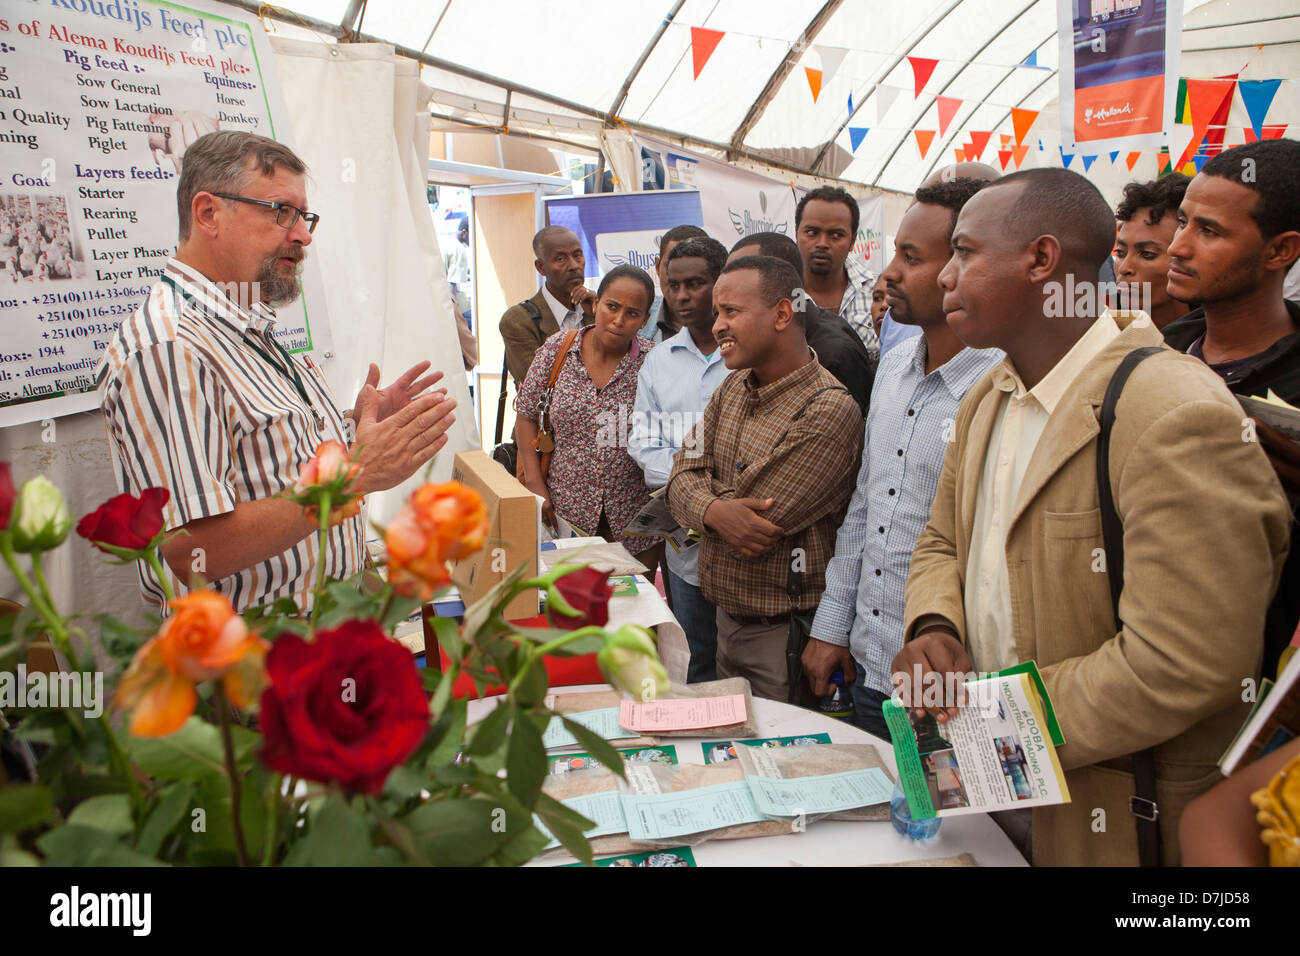 Jan Couzine is a dutch entrerpreneur ethiopia. Through his company AKF he trades in agriculture seeds . he talks - Stock Image